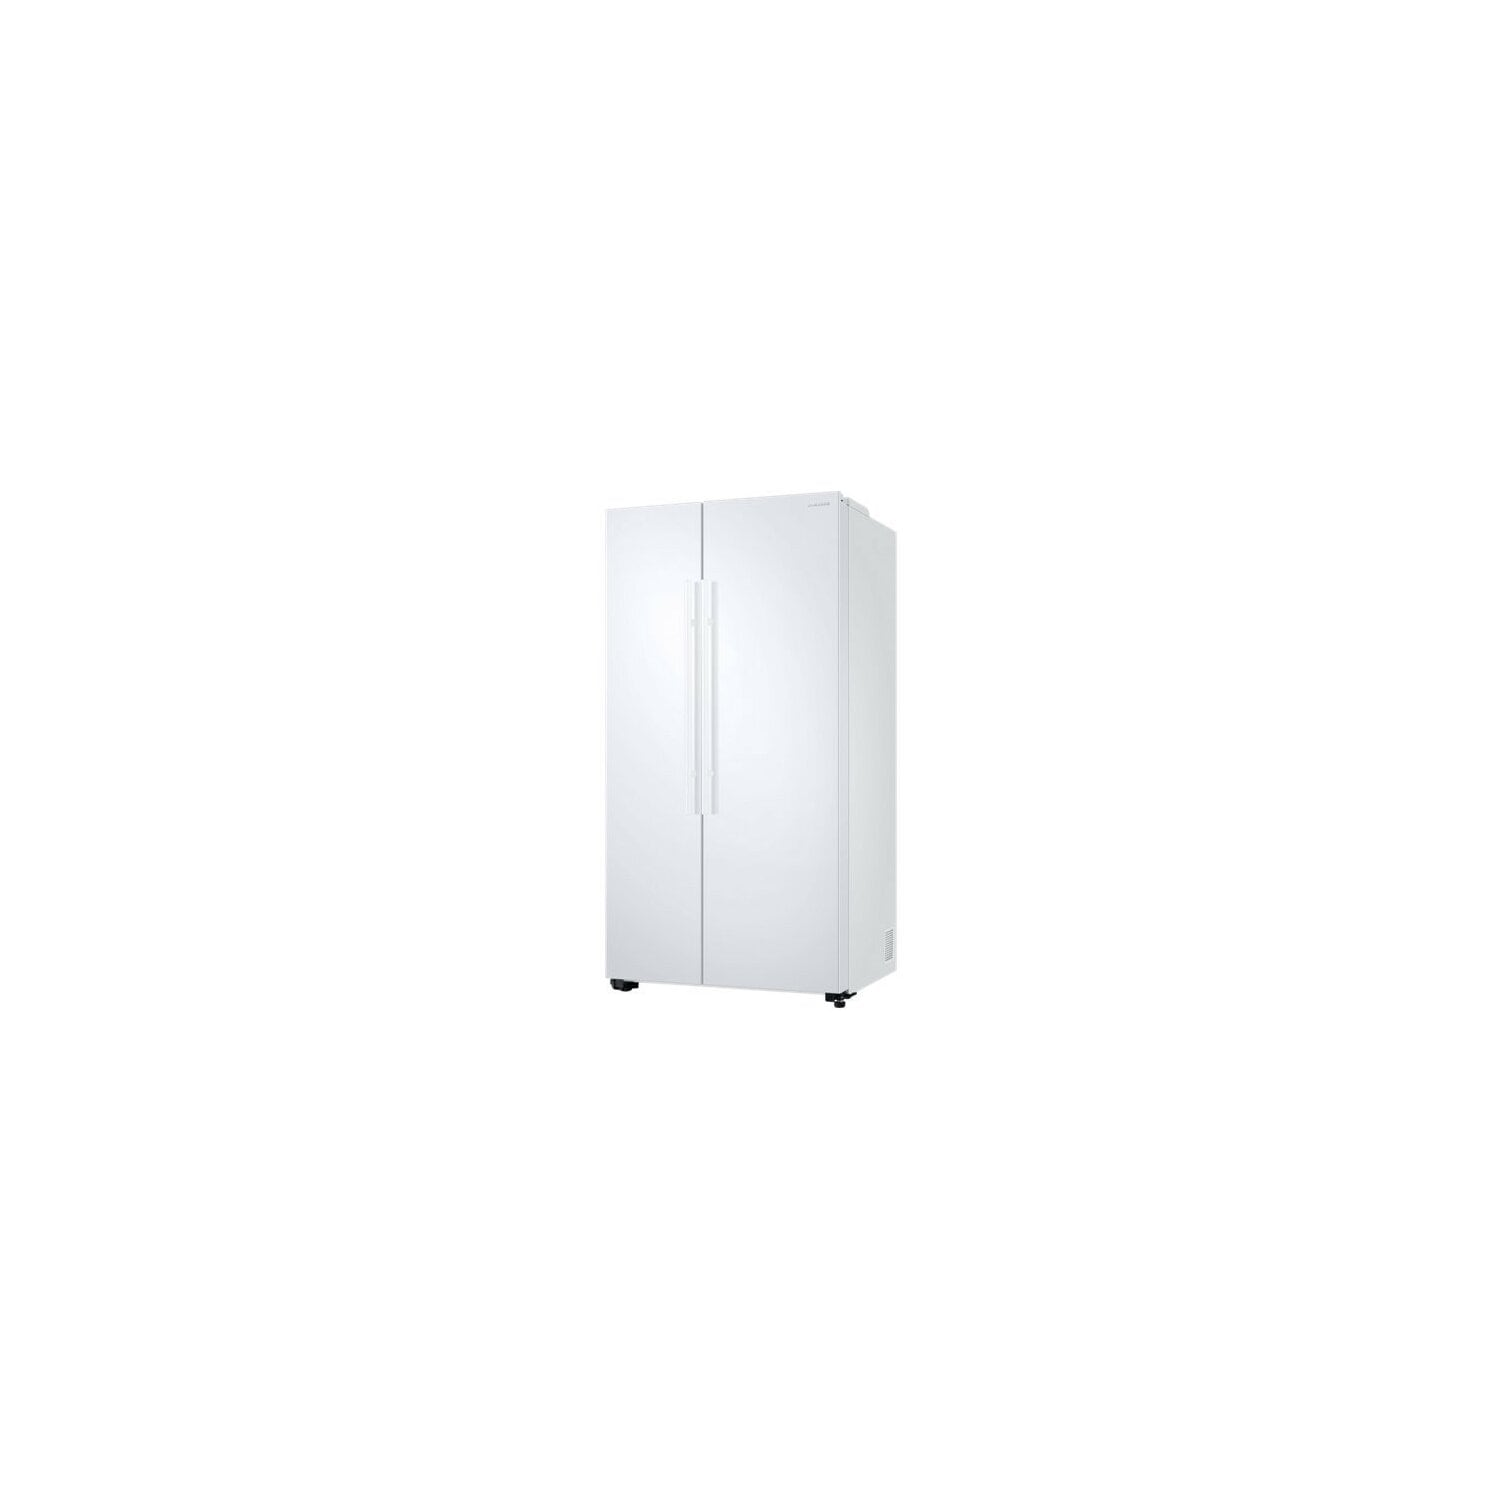 Lodówka SAMSUNG RS66N8100WW/EF Prestige Collection